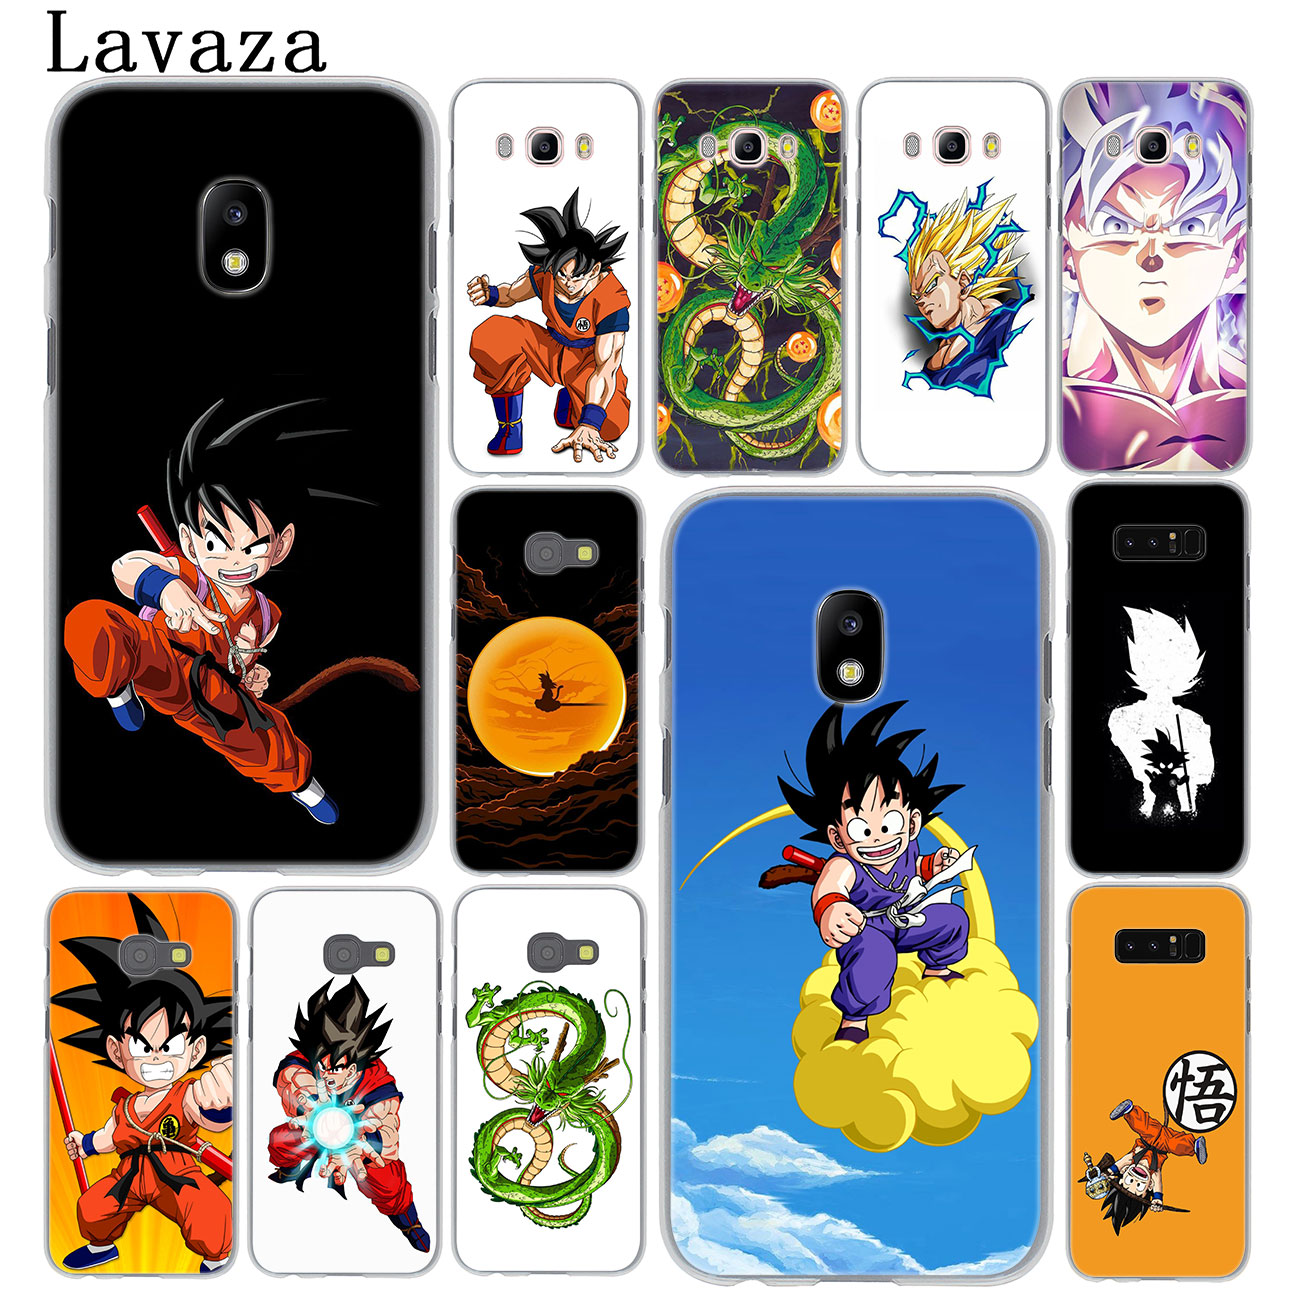 Strong-Willed Lavaza Dragon Ball Goku Hard Phone Case For Samsung Galaxy J6 J5 J1 J2 J3 J7 2017 2016 2015 Prime J7 Us Eu Version Cover Phone Bags & Cases